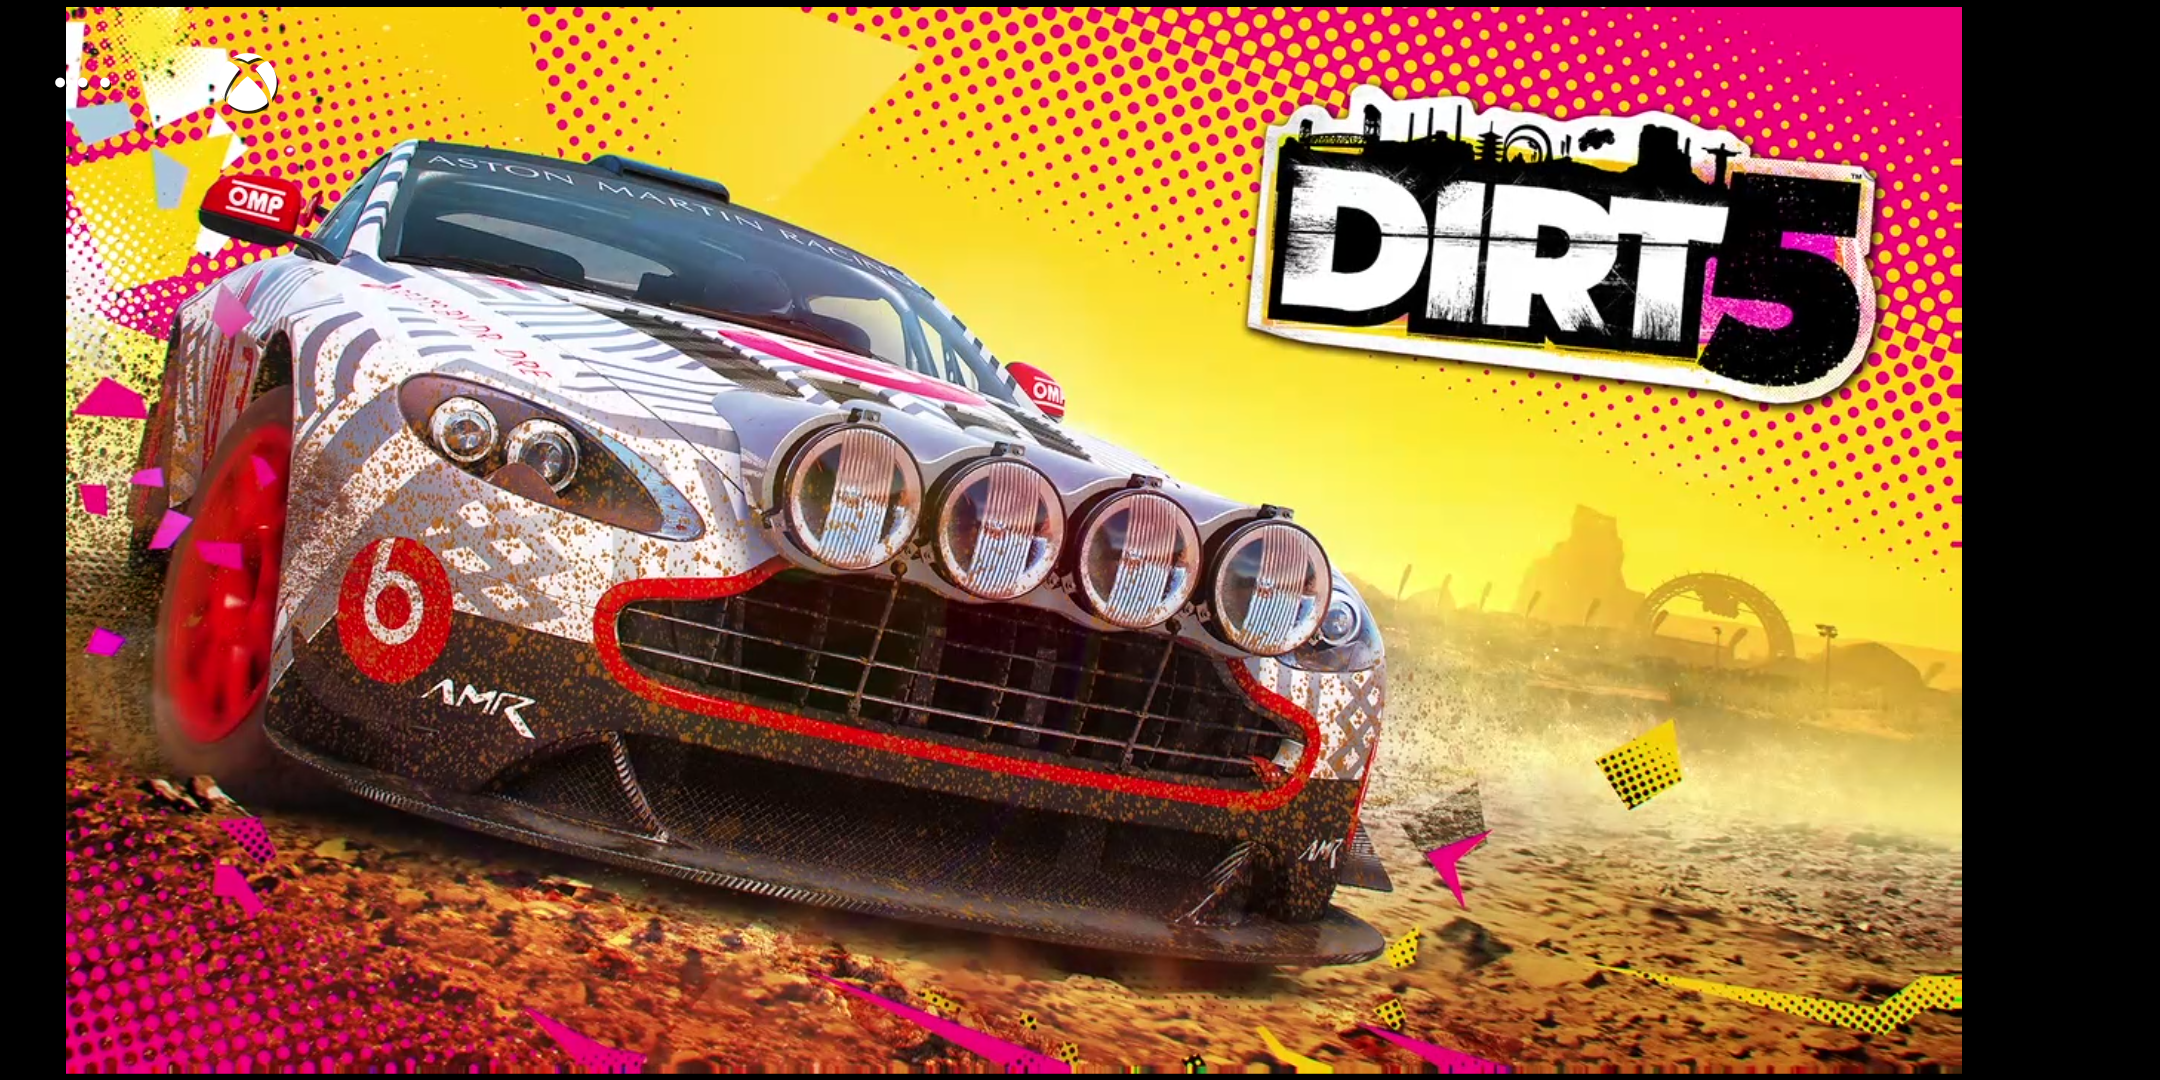 Dirt 5 on Xbox Series S streaming to a phone.